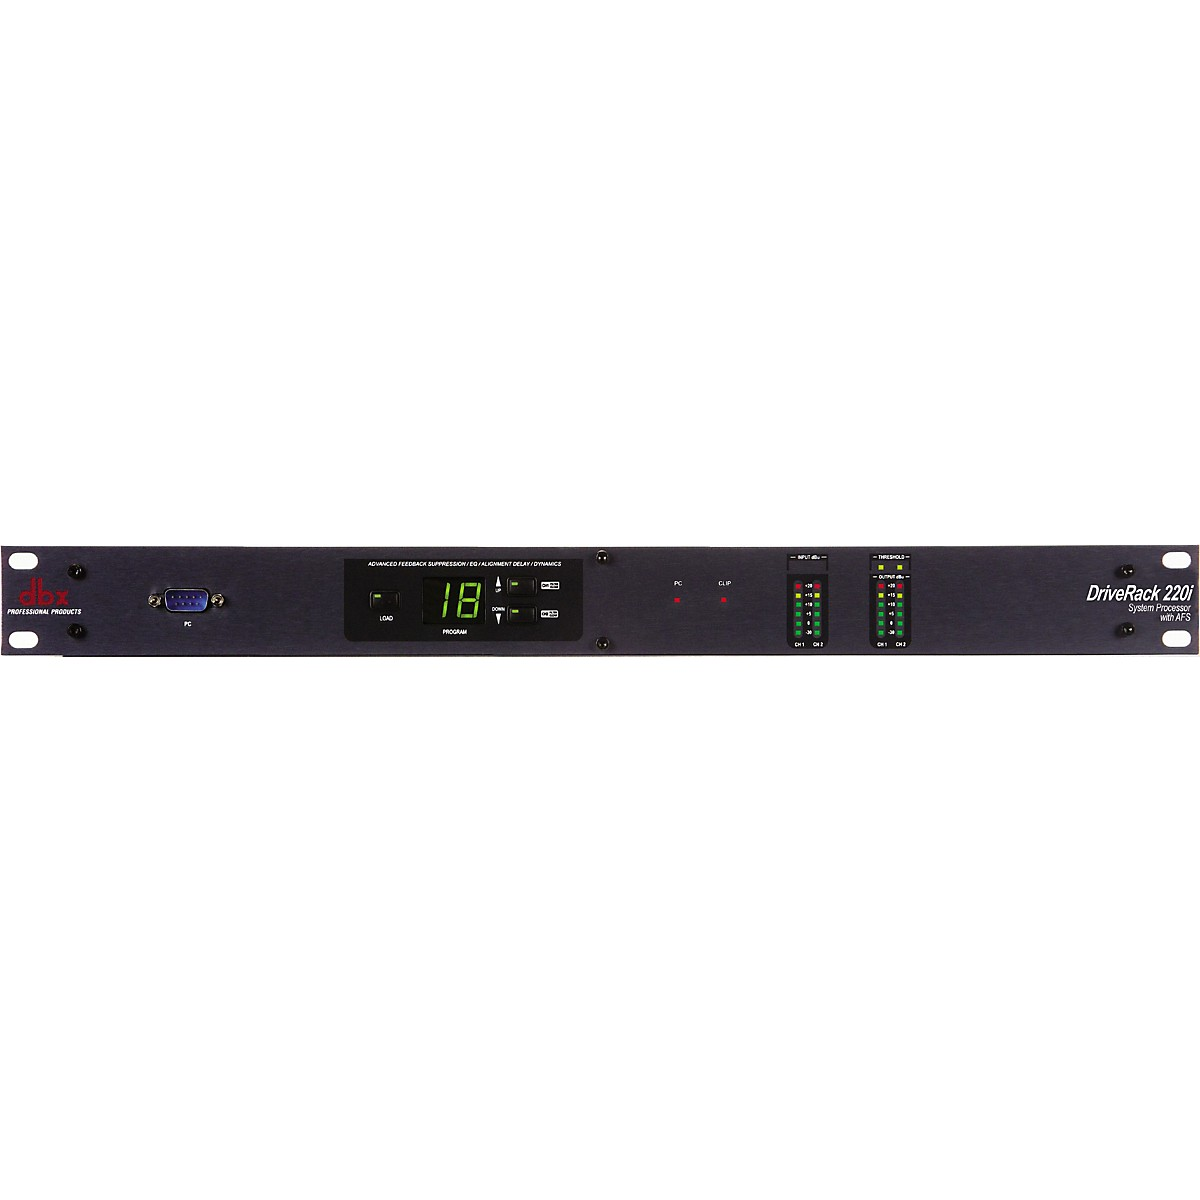 dbx 220i 2X2 Loudspeaker Management System with Display